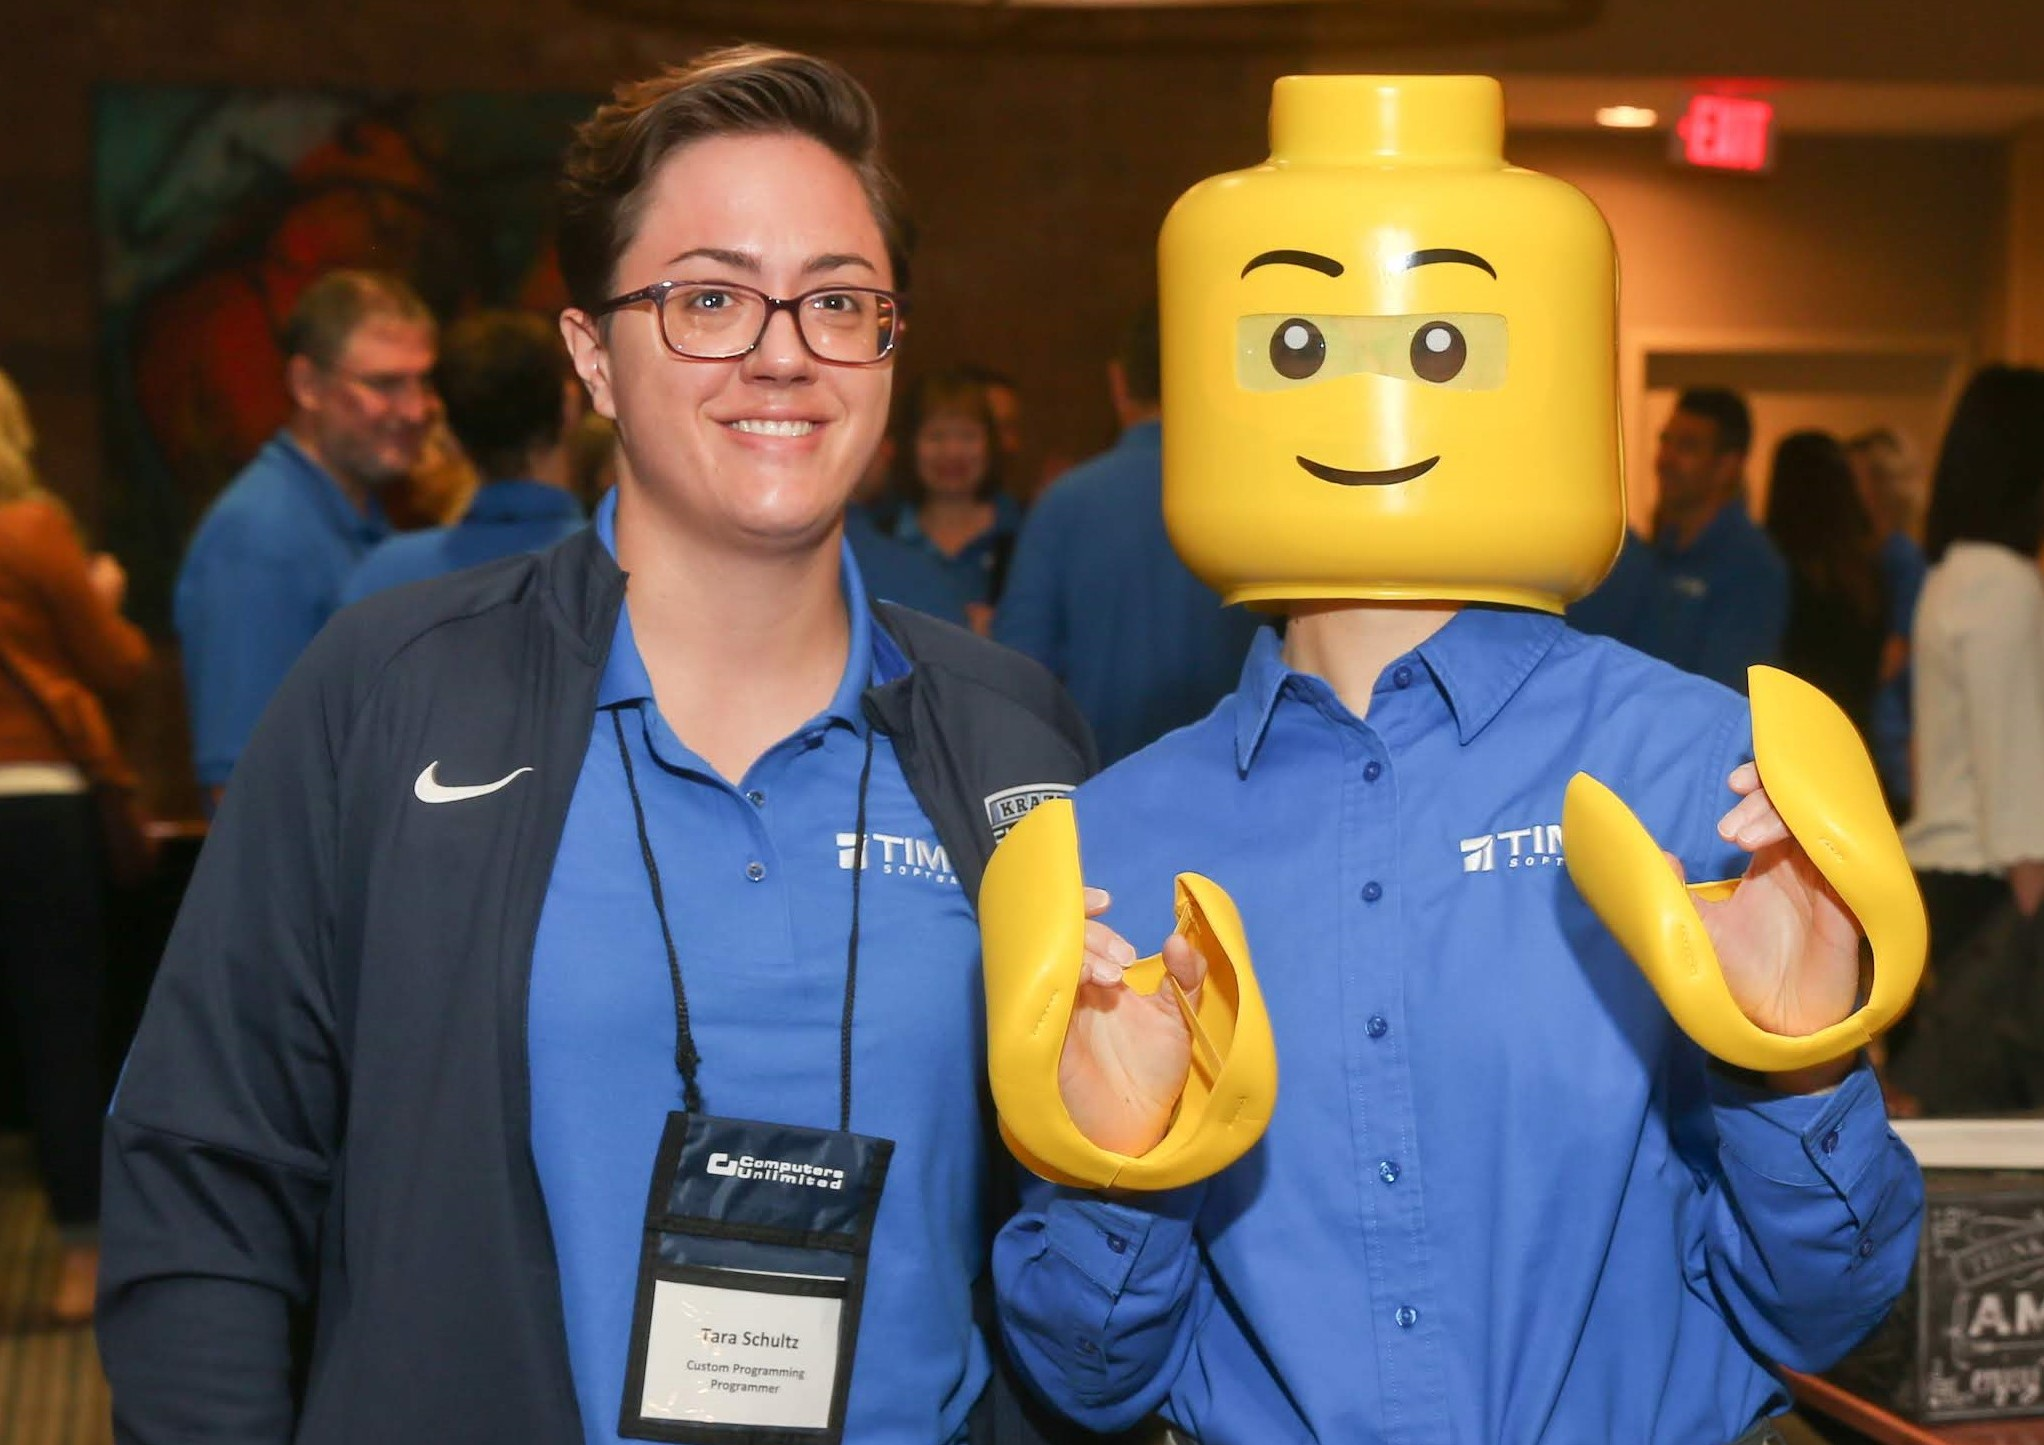 A LEGO character poses with a Computers Unlimited team member during Users Group 2019. Click to see more.